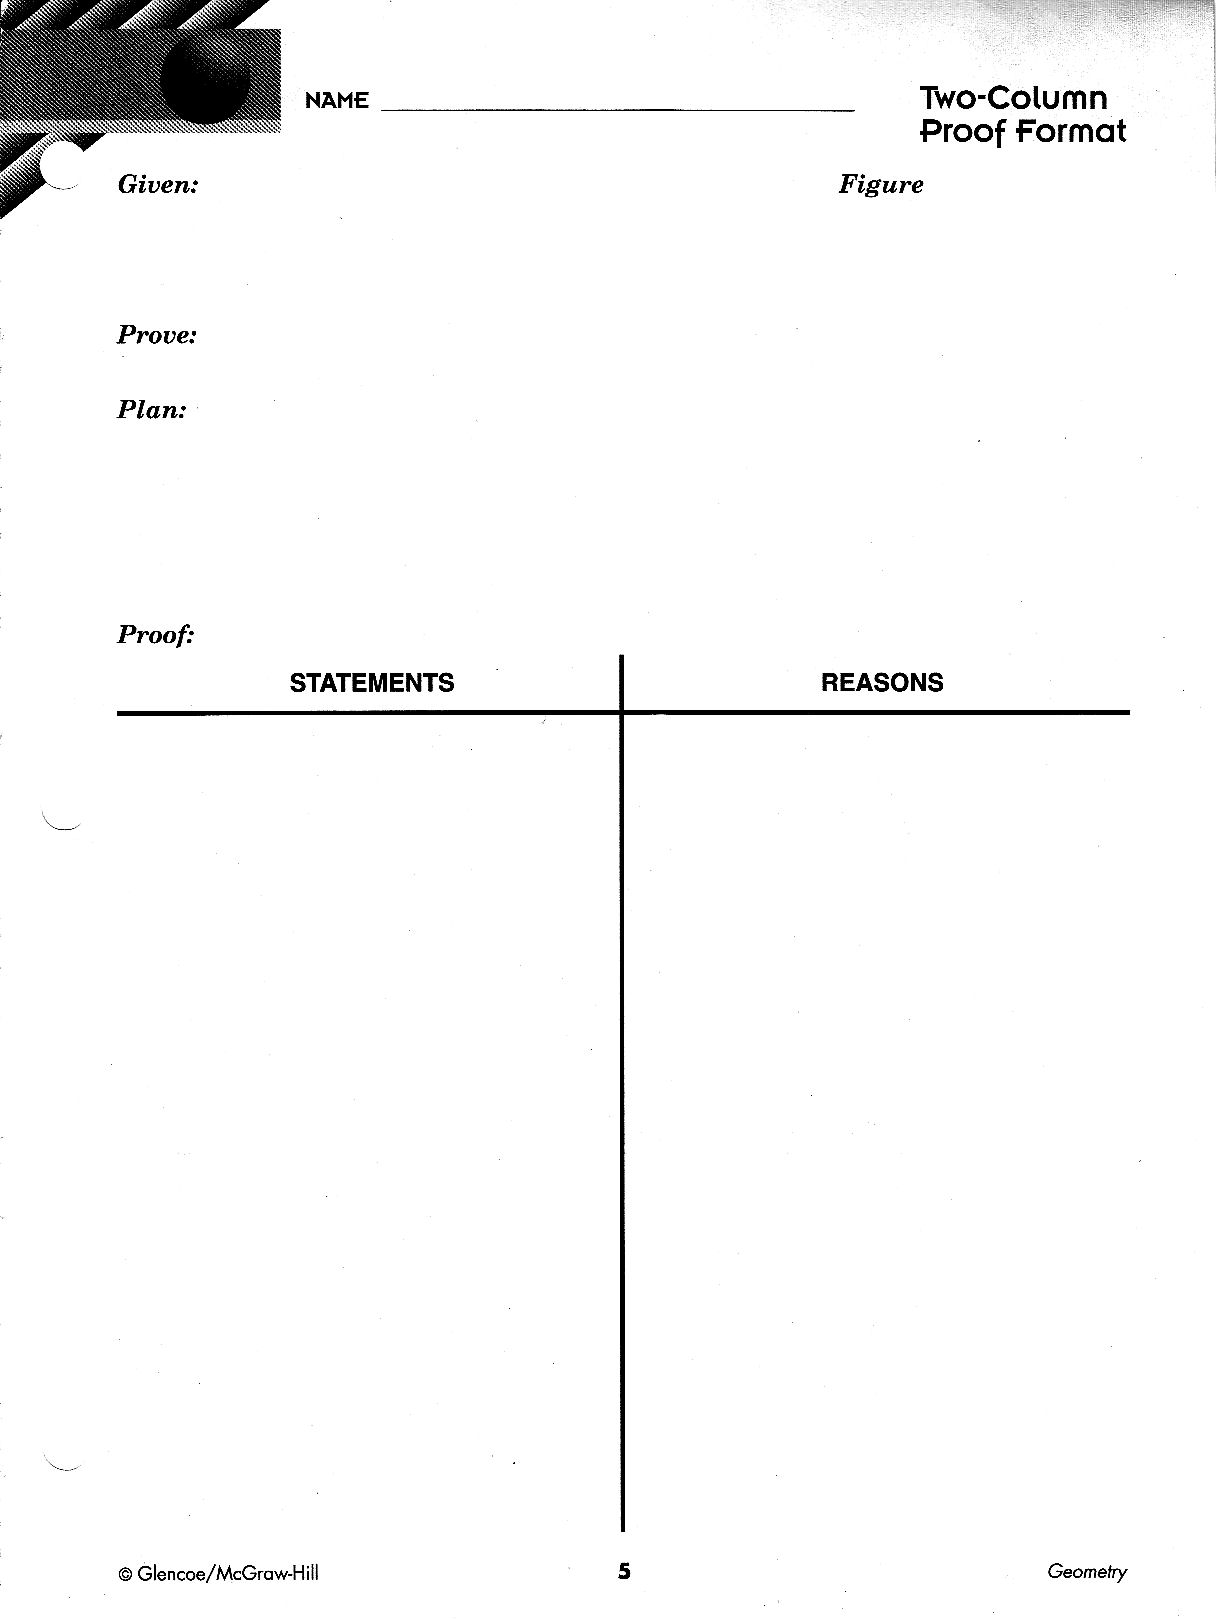 geometry paper and patterns 05 two column proof format jpg